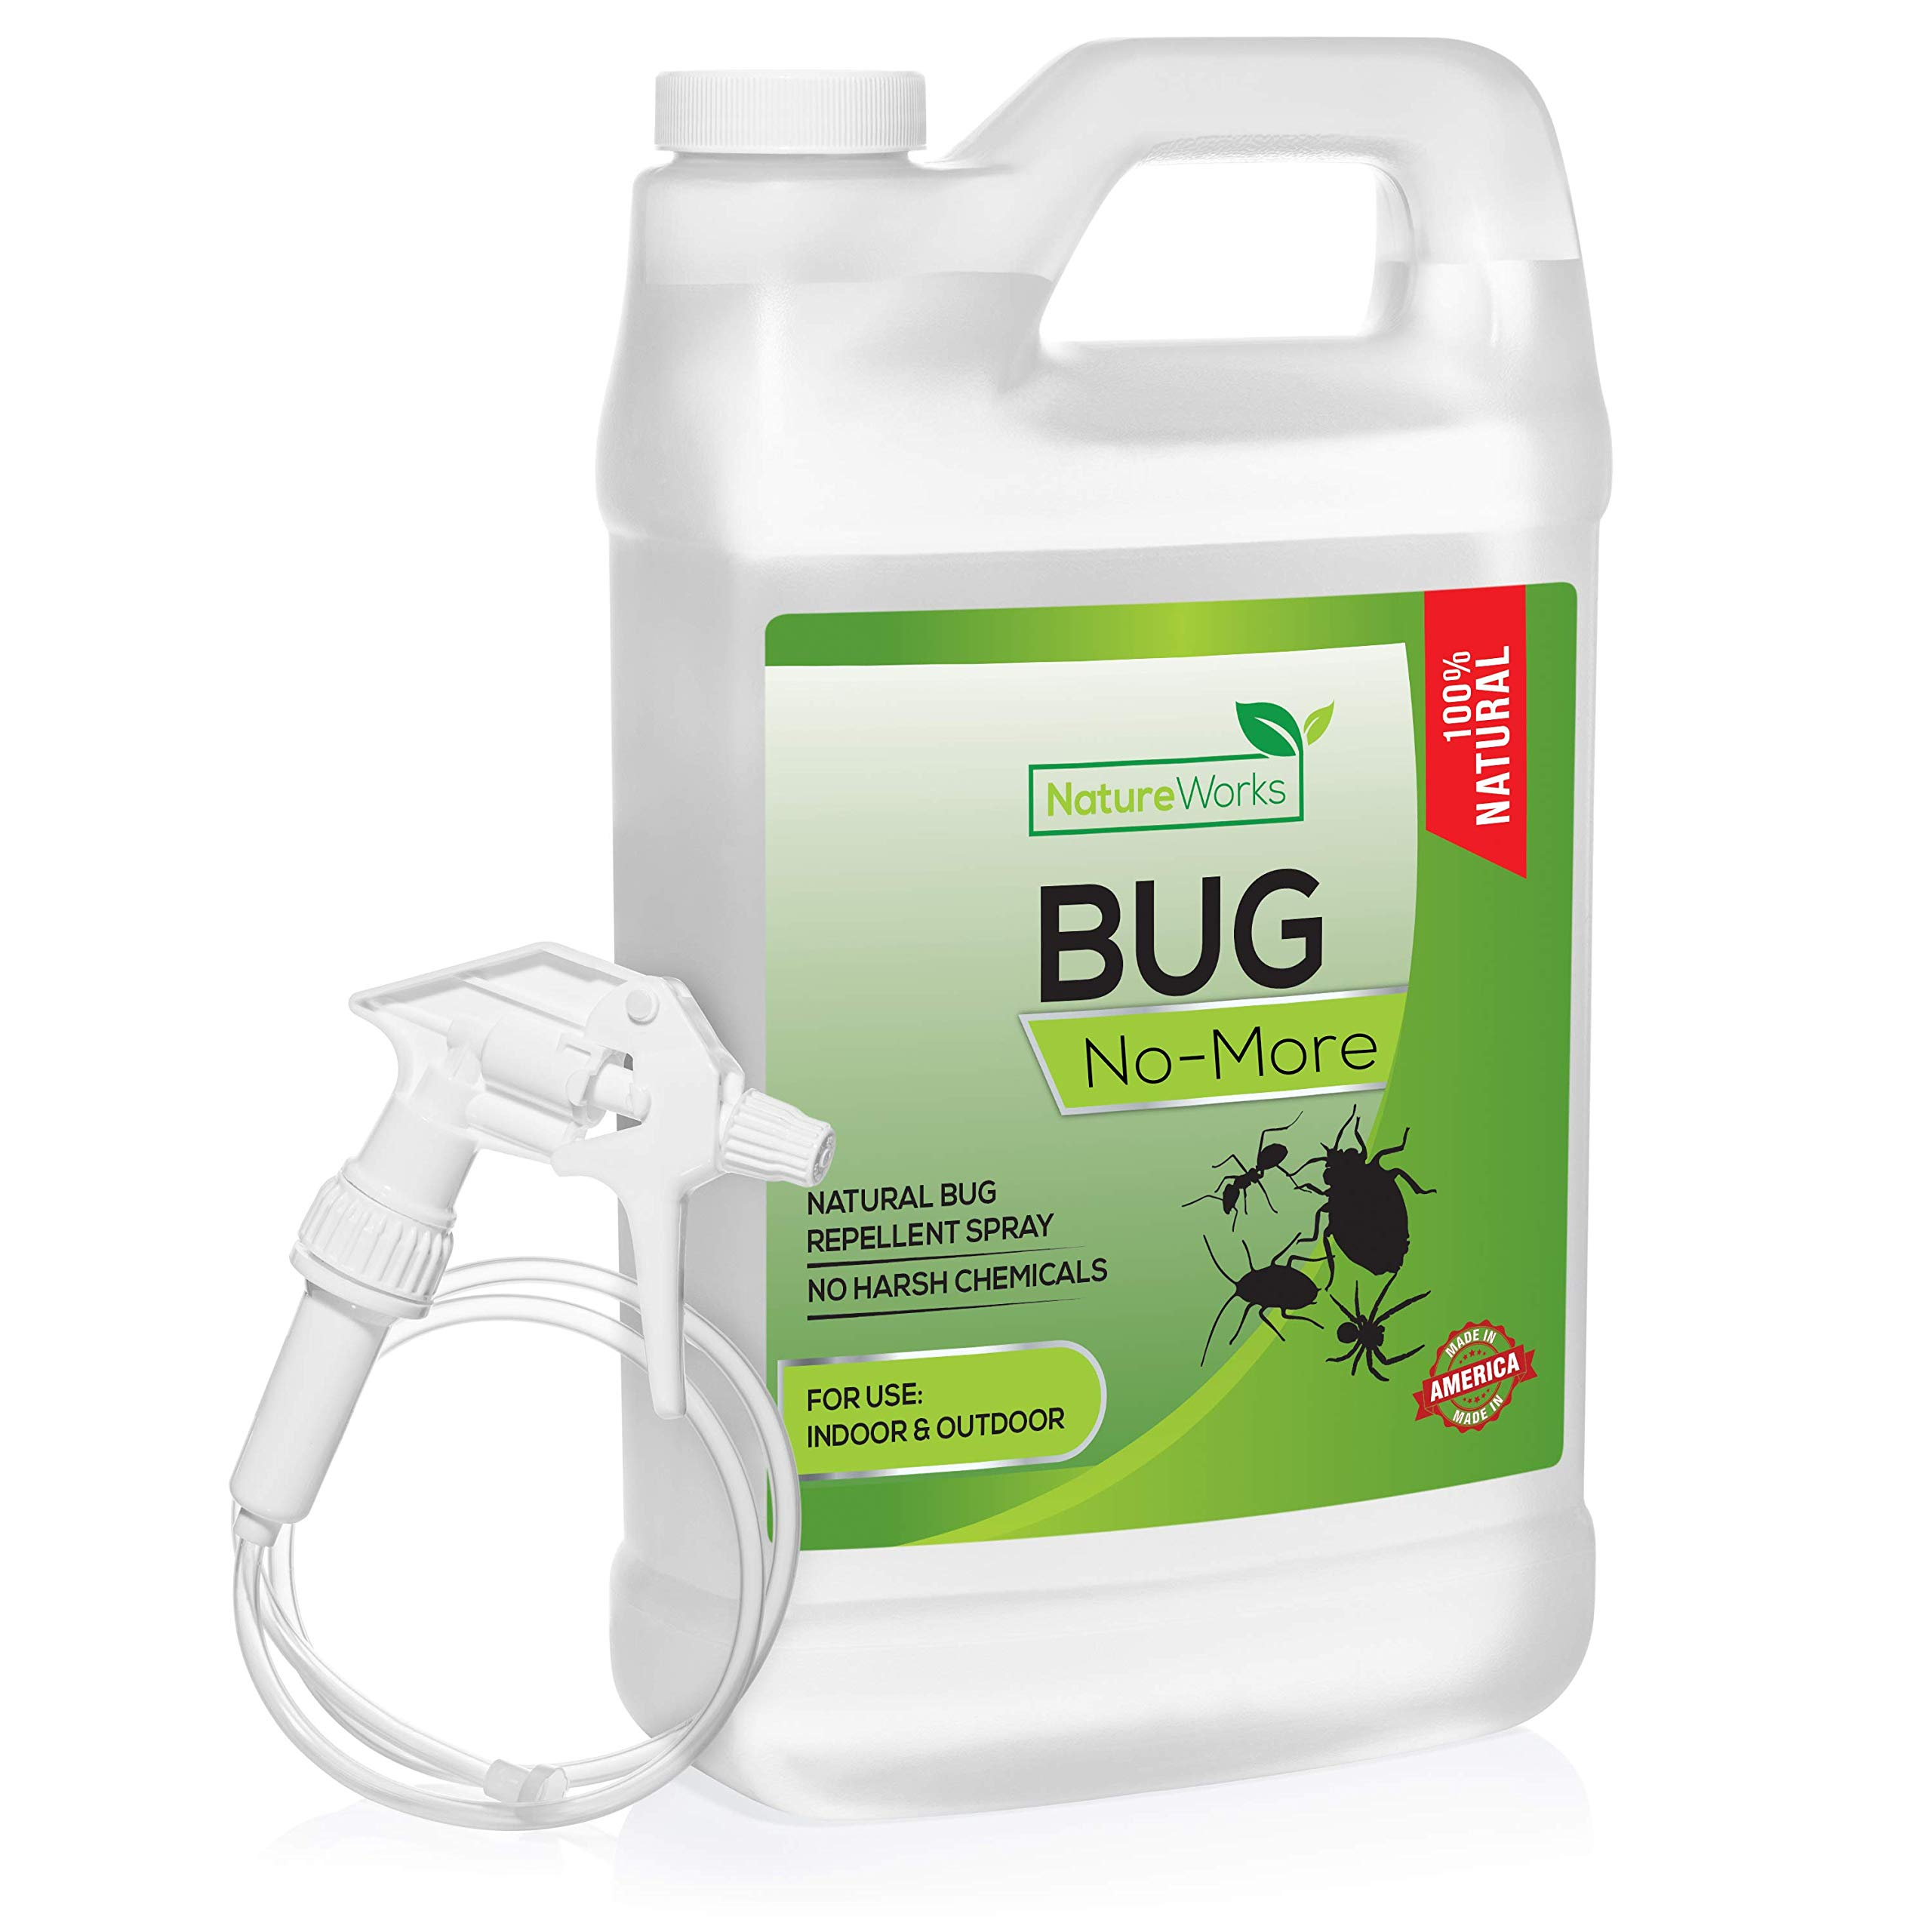 Bug- No-More | Natural Insect & Pest Control Spray | Ant Roach Termite Fly Mosquito Flea & Spider Killer | Organic Indoor Outdoor Pesticide I Home Patio Lawn & Garden Insecticide | Kid & Pet Safe 64oz by NatureWorks